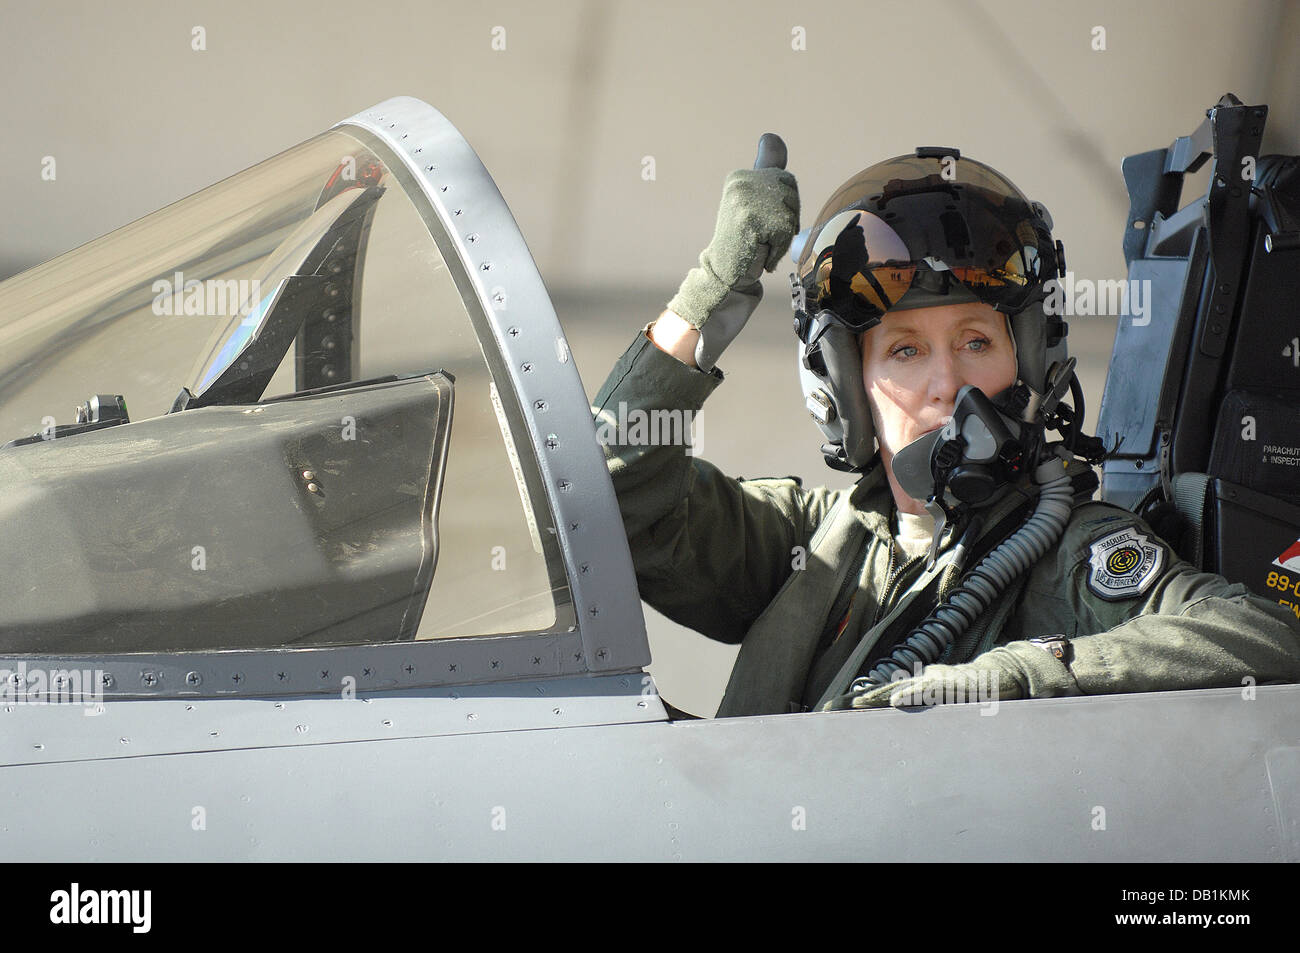 U.S Air Force Col. Jeannie Leavitt, 4th Fighter Wing commander, signals her crew chief before taking flight at Seymour - Stock Image